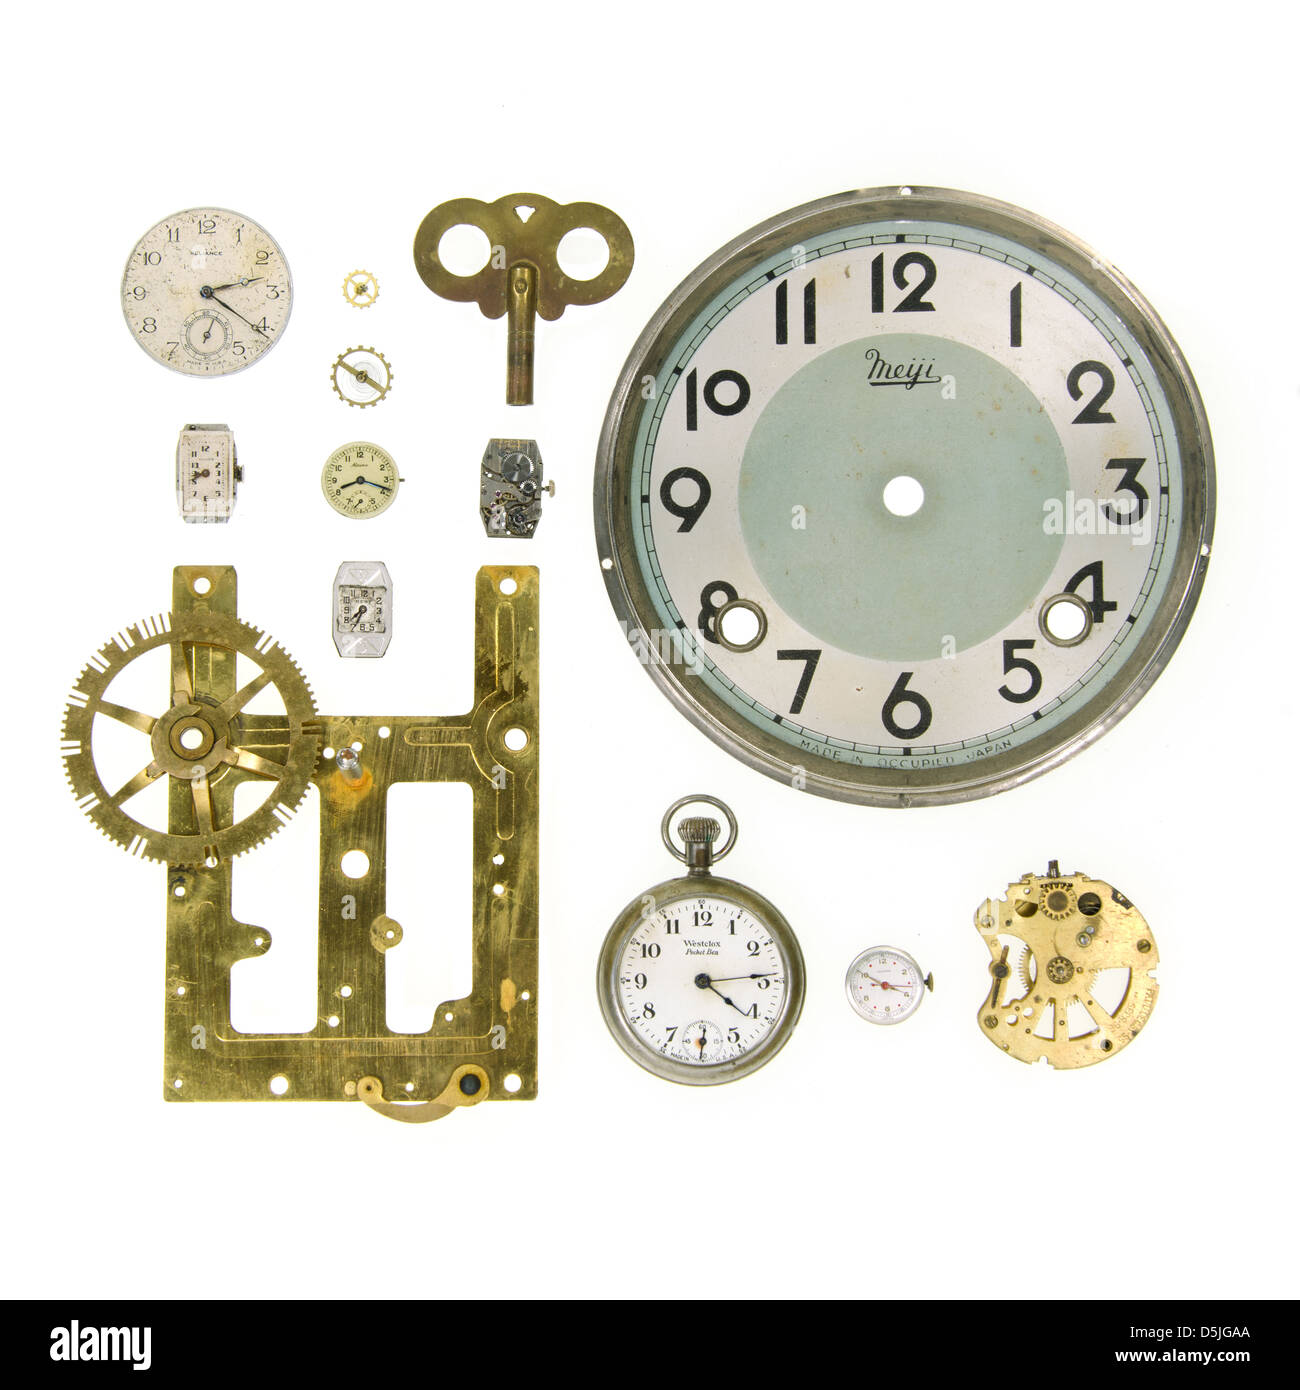 Clock parts, clock faces, and watch mechanisms on a white background Stock Photo